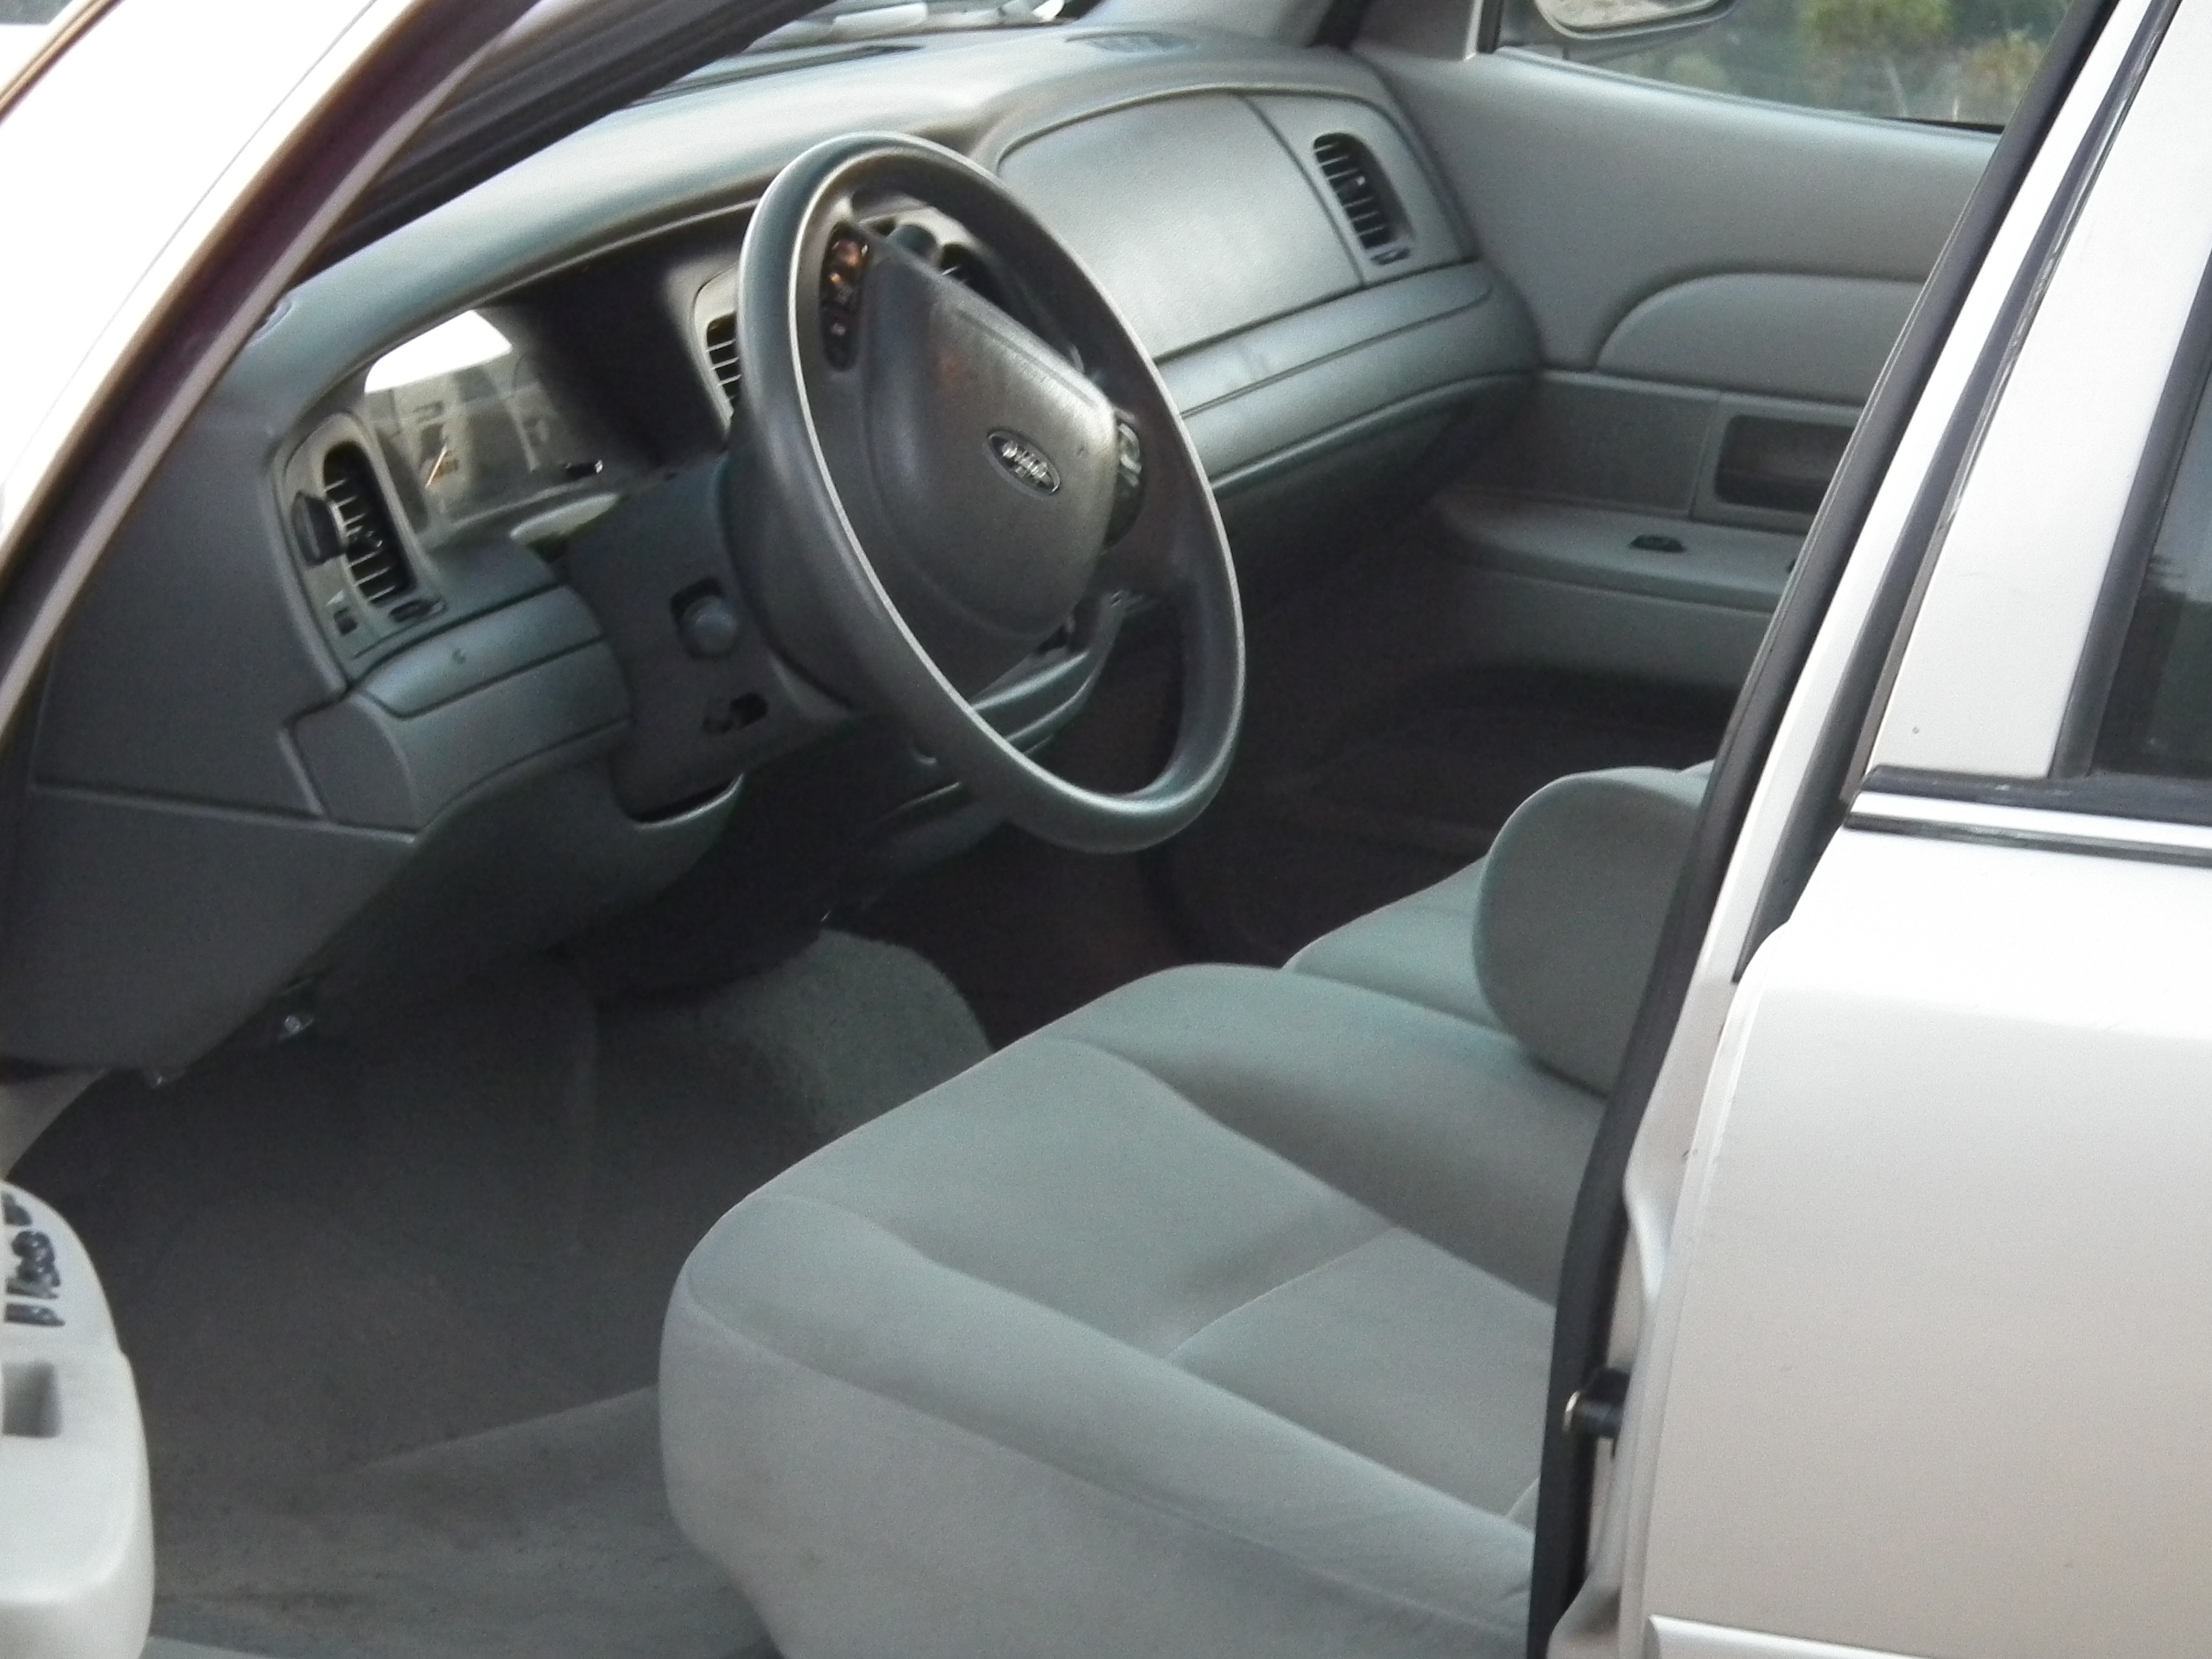 Outstanding Used 2004 Ford Police Interceptor For Sale In Berkeley Ca Machost Co Dining Chair Design Ideas Machostcouk